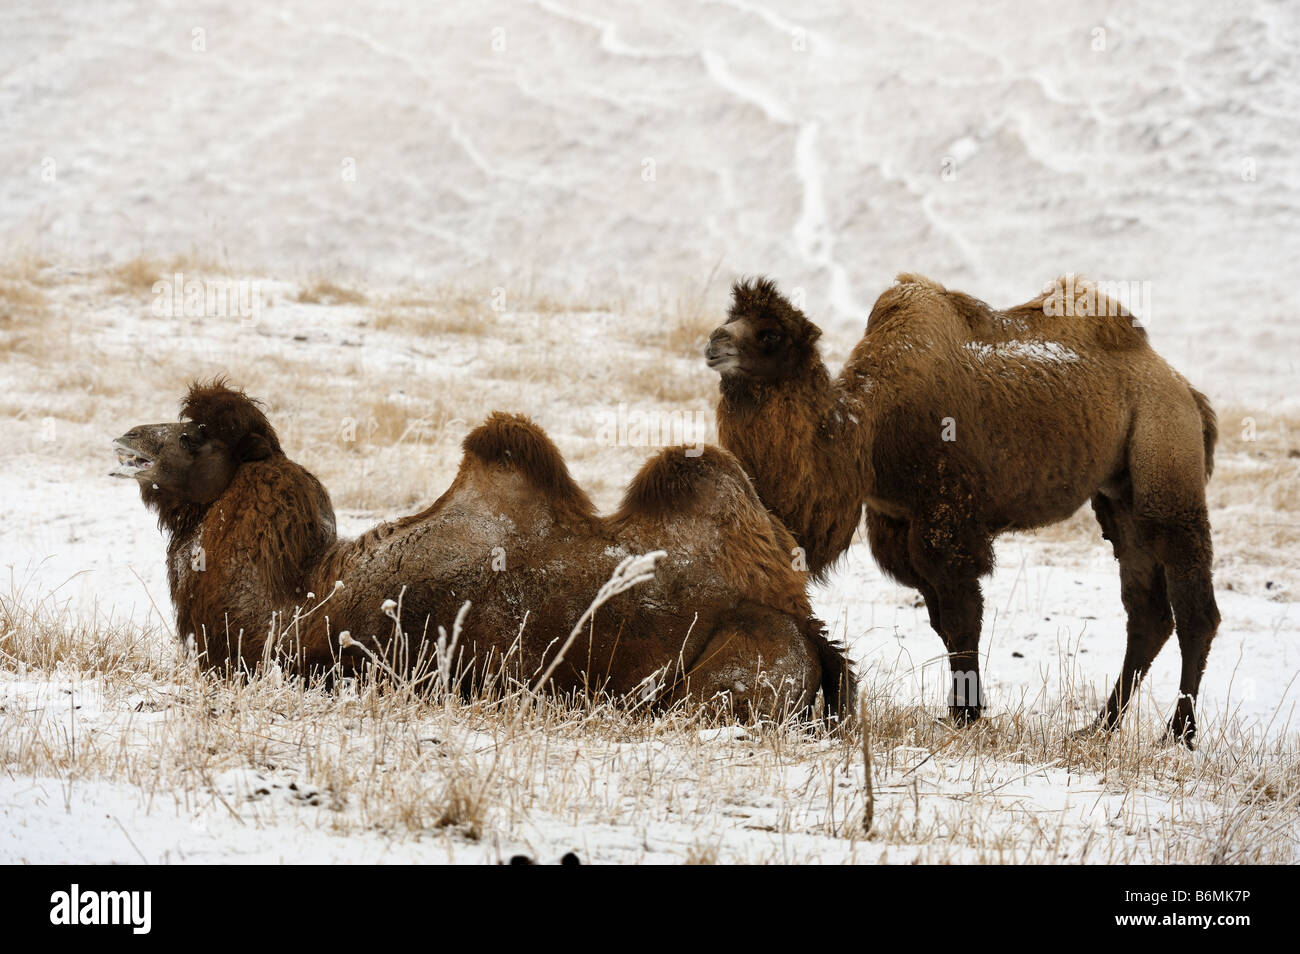 The Bactrian Camels, male and female in breeding season - Stock Image